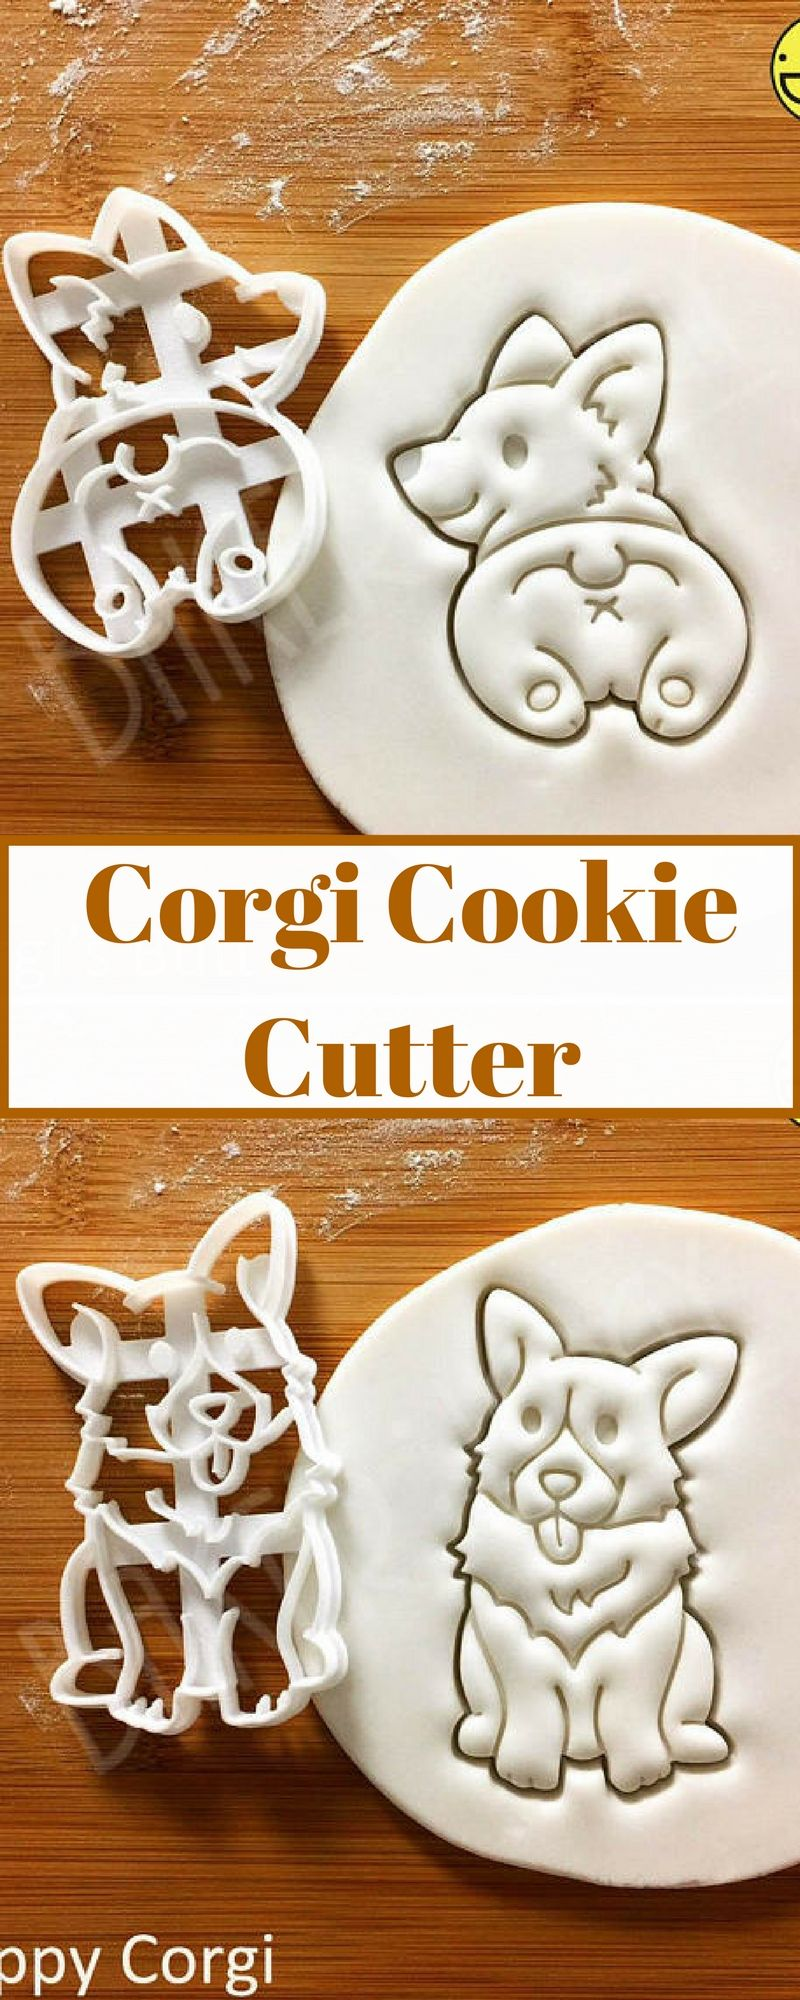 Selectable sizes Pembroke Welsh Corgi Dog Cookie Cutter